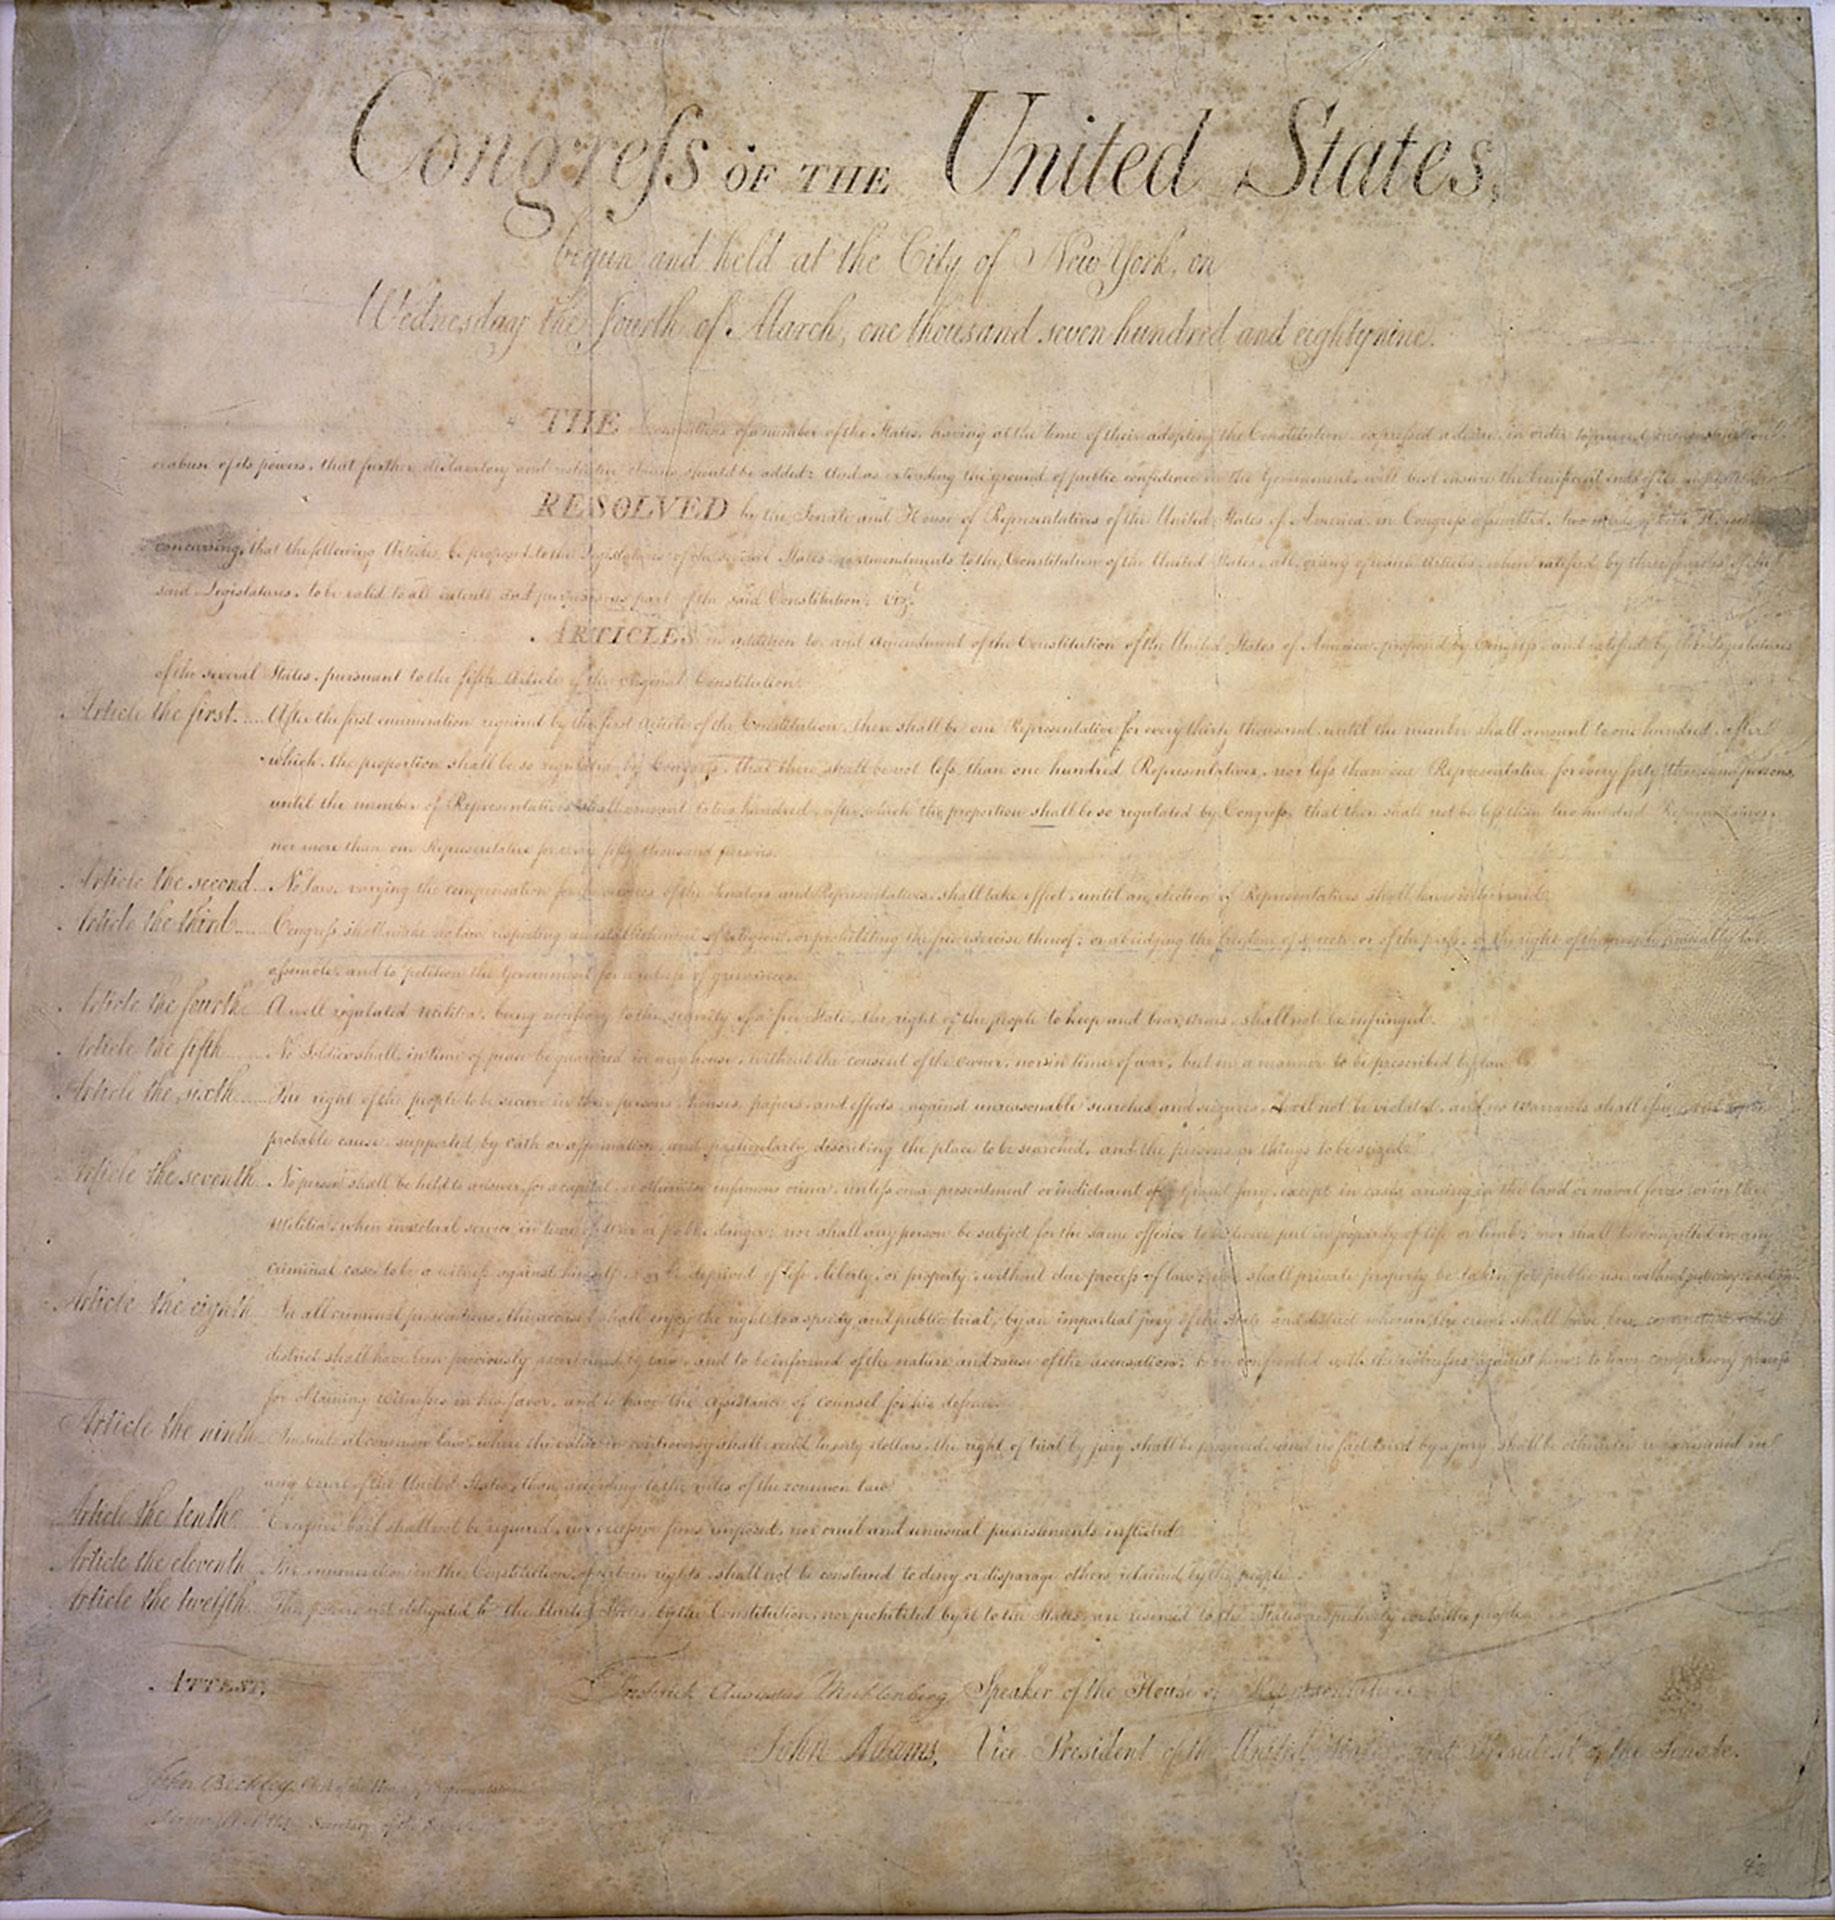 image of Bill of Rights (1791)